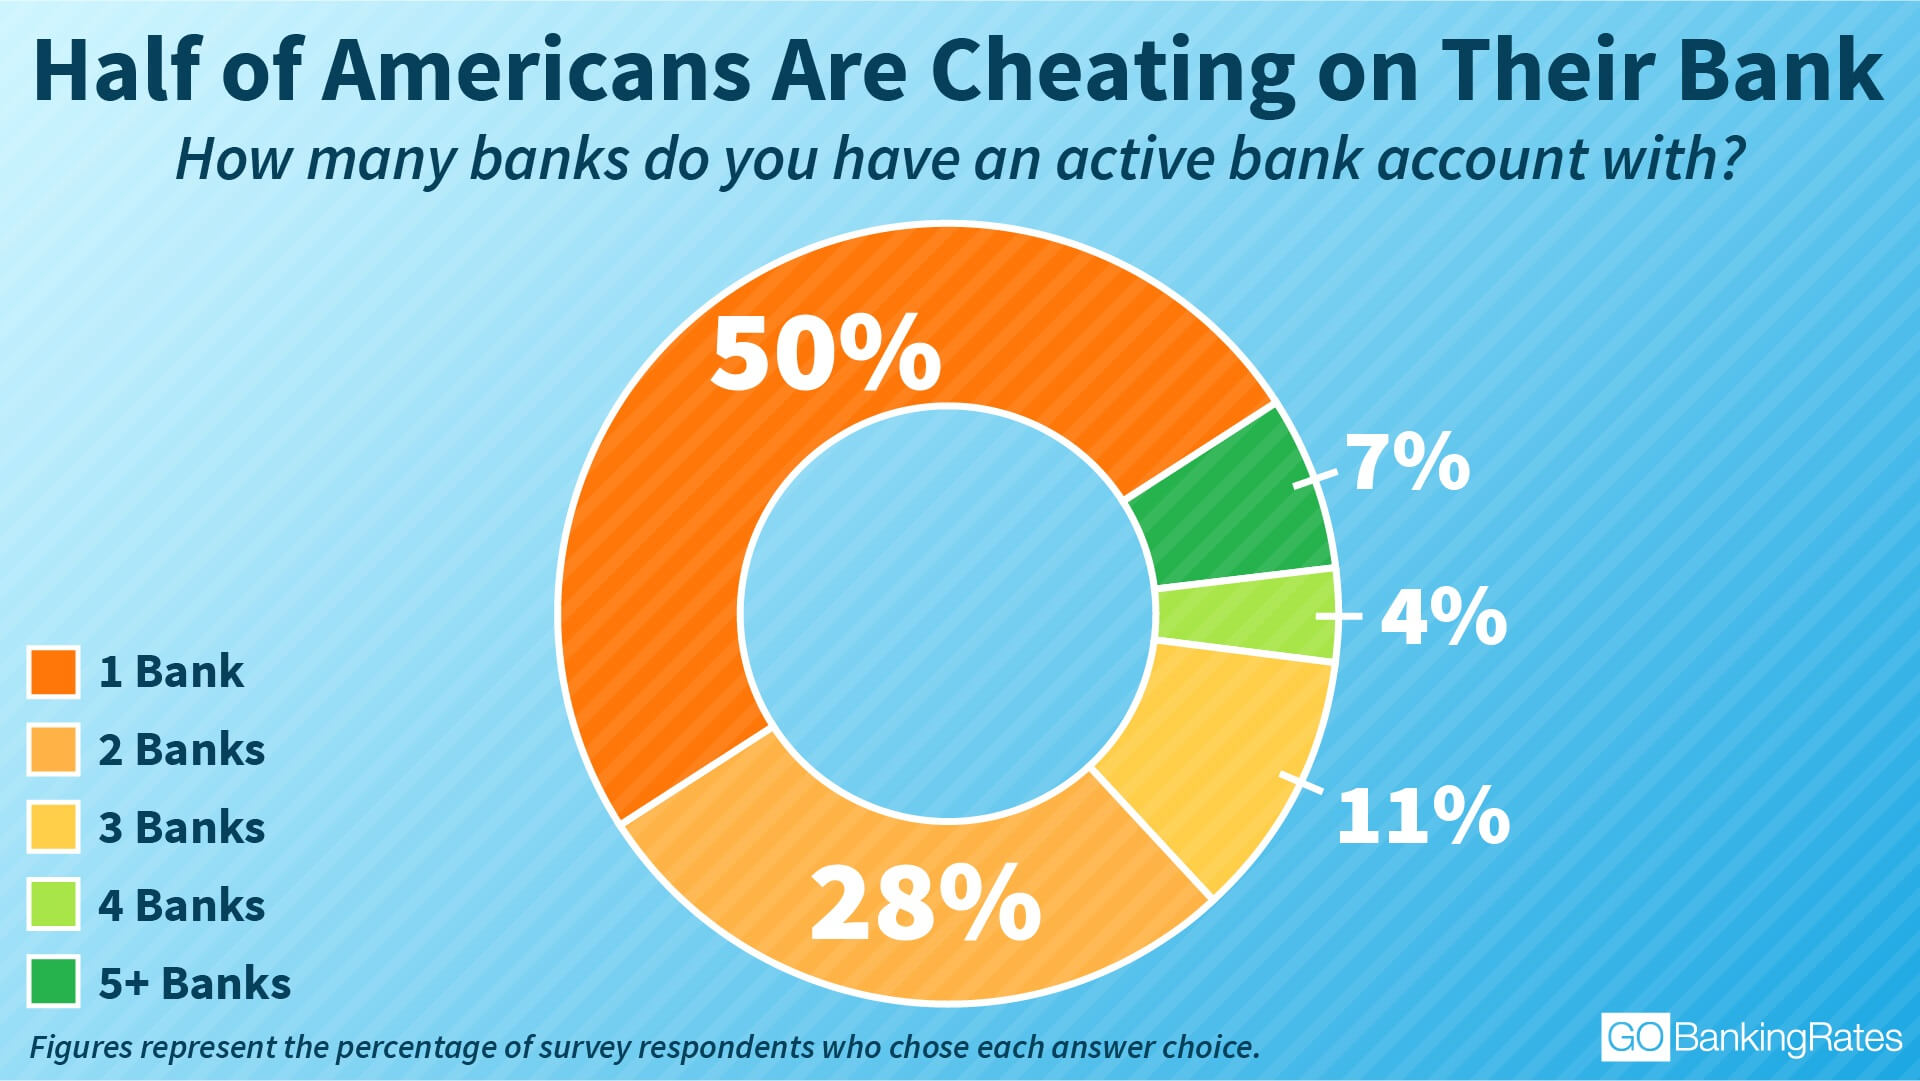 Half of Americans Are Cheating on Their Bank